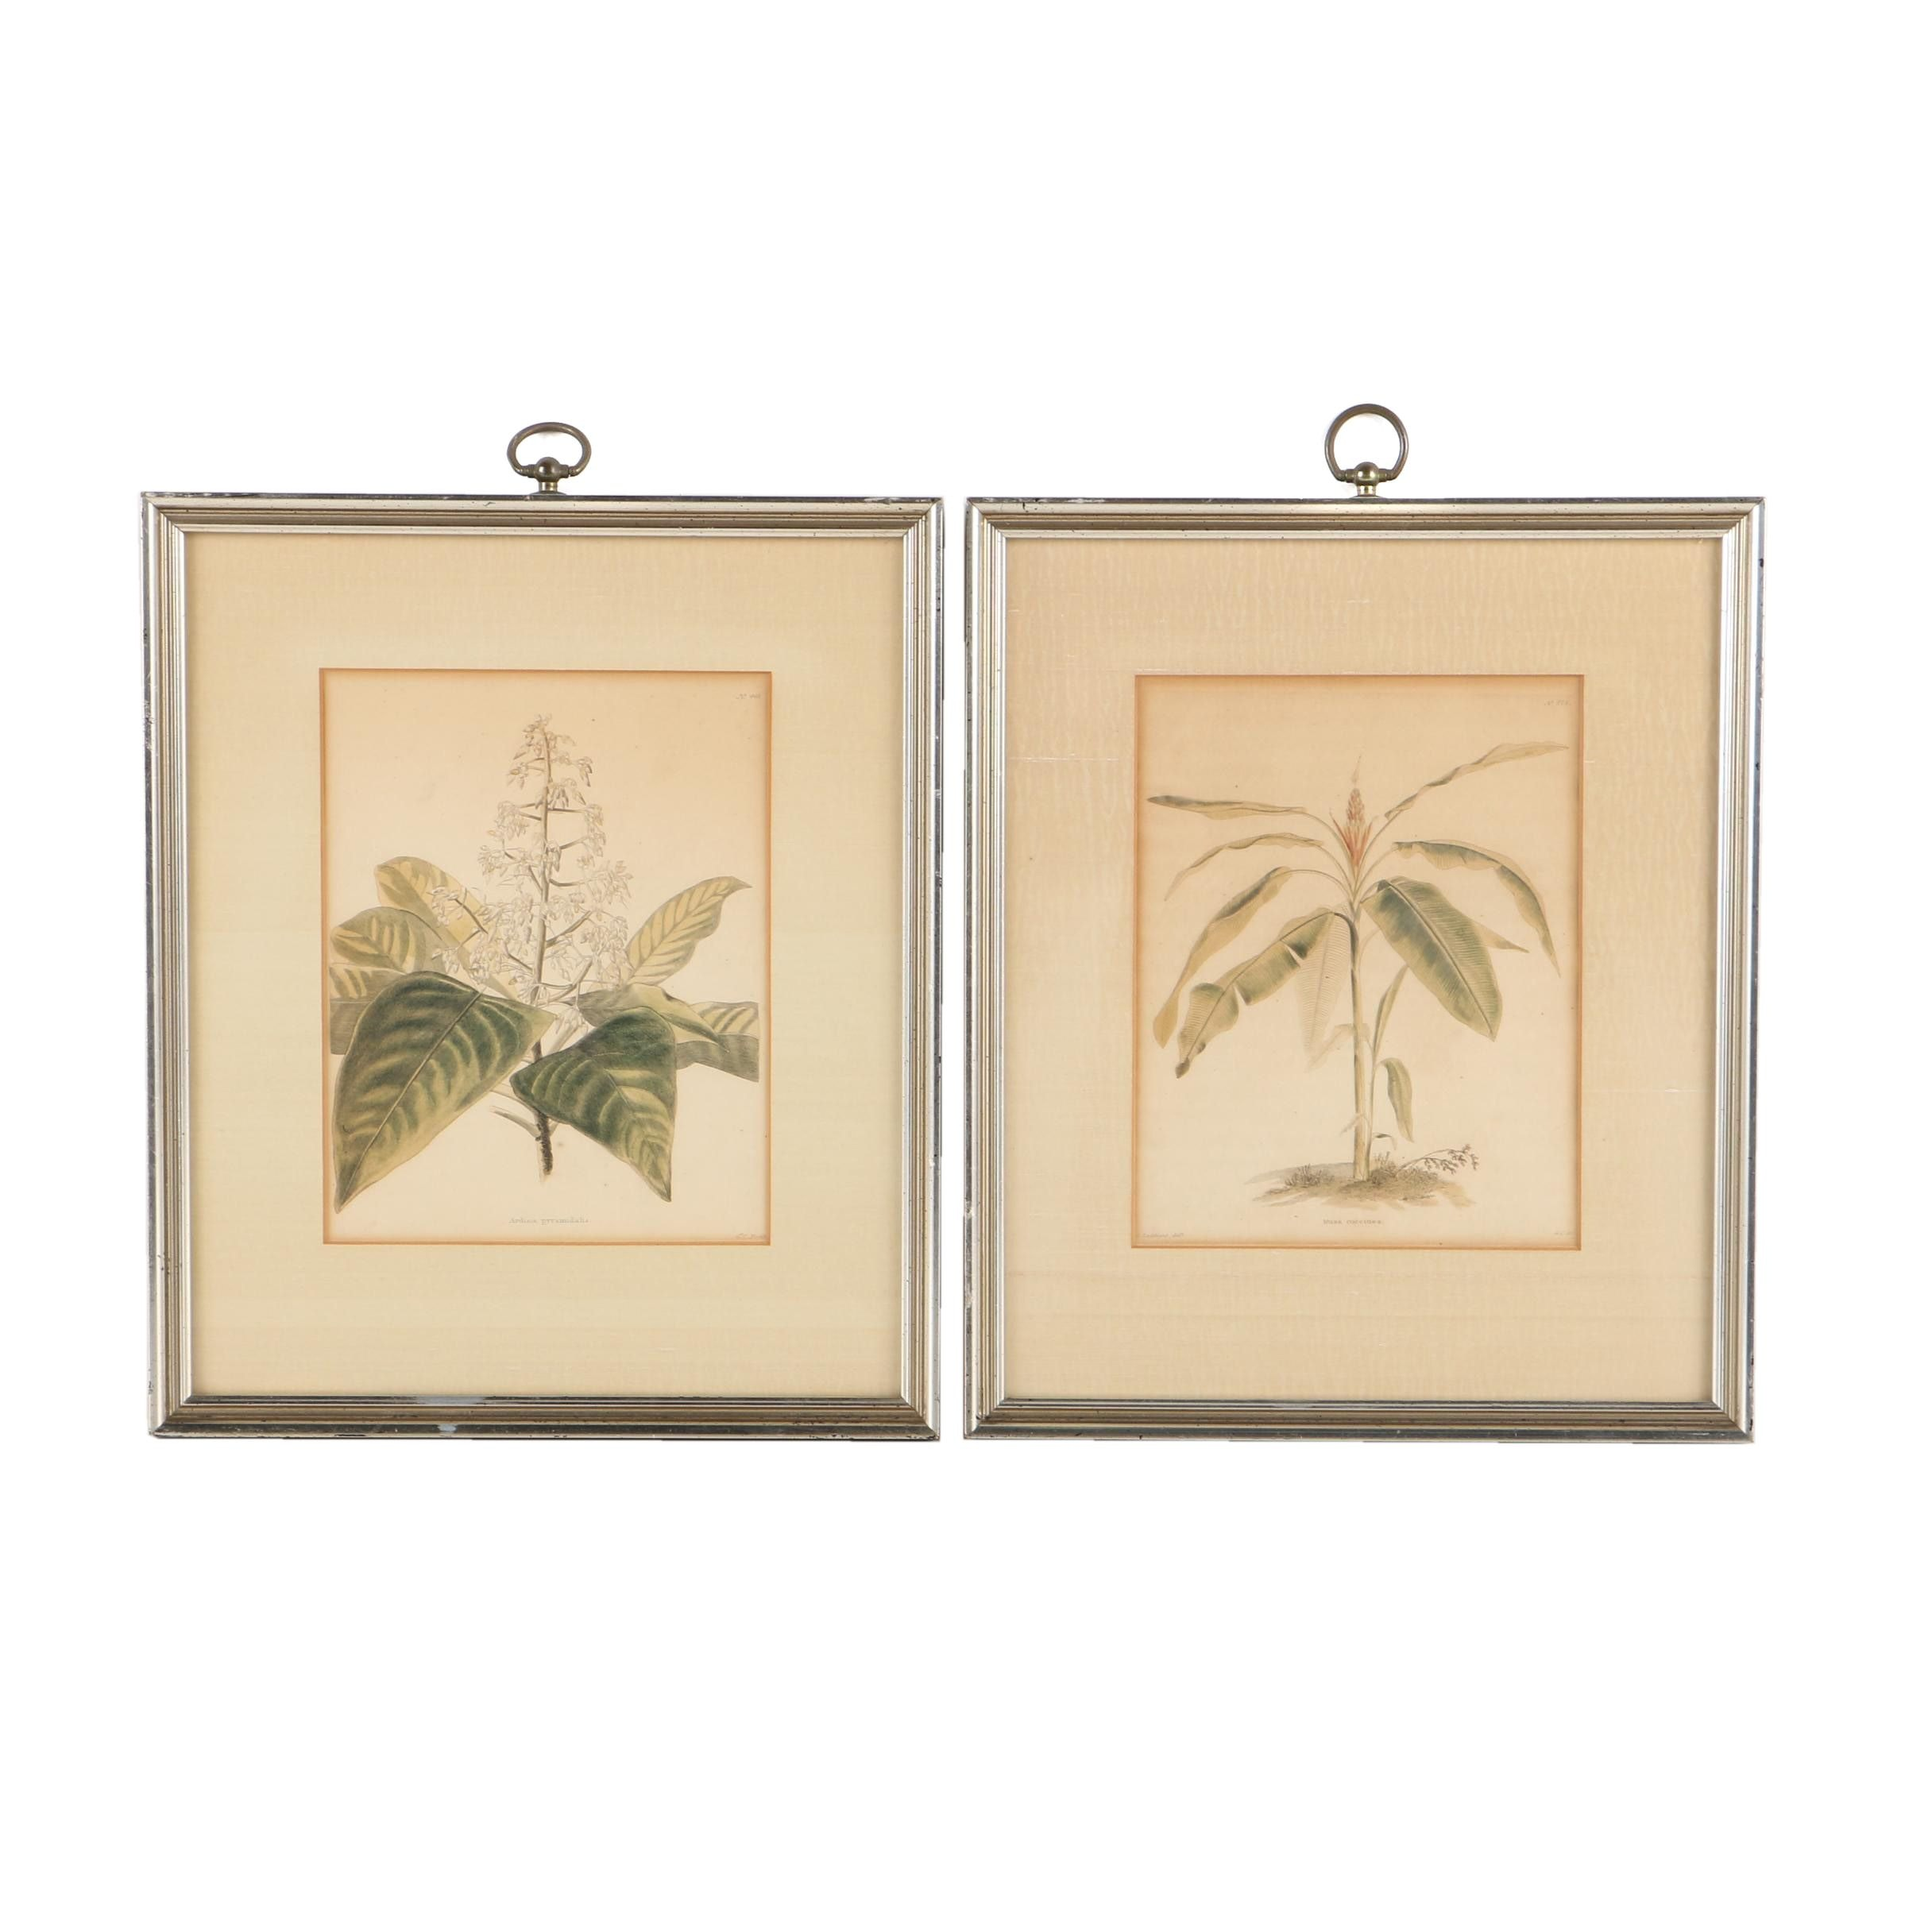 George Cooke Hand Colored Engravings of Botanical Illustrations